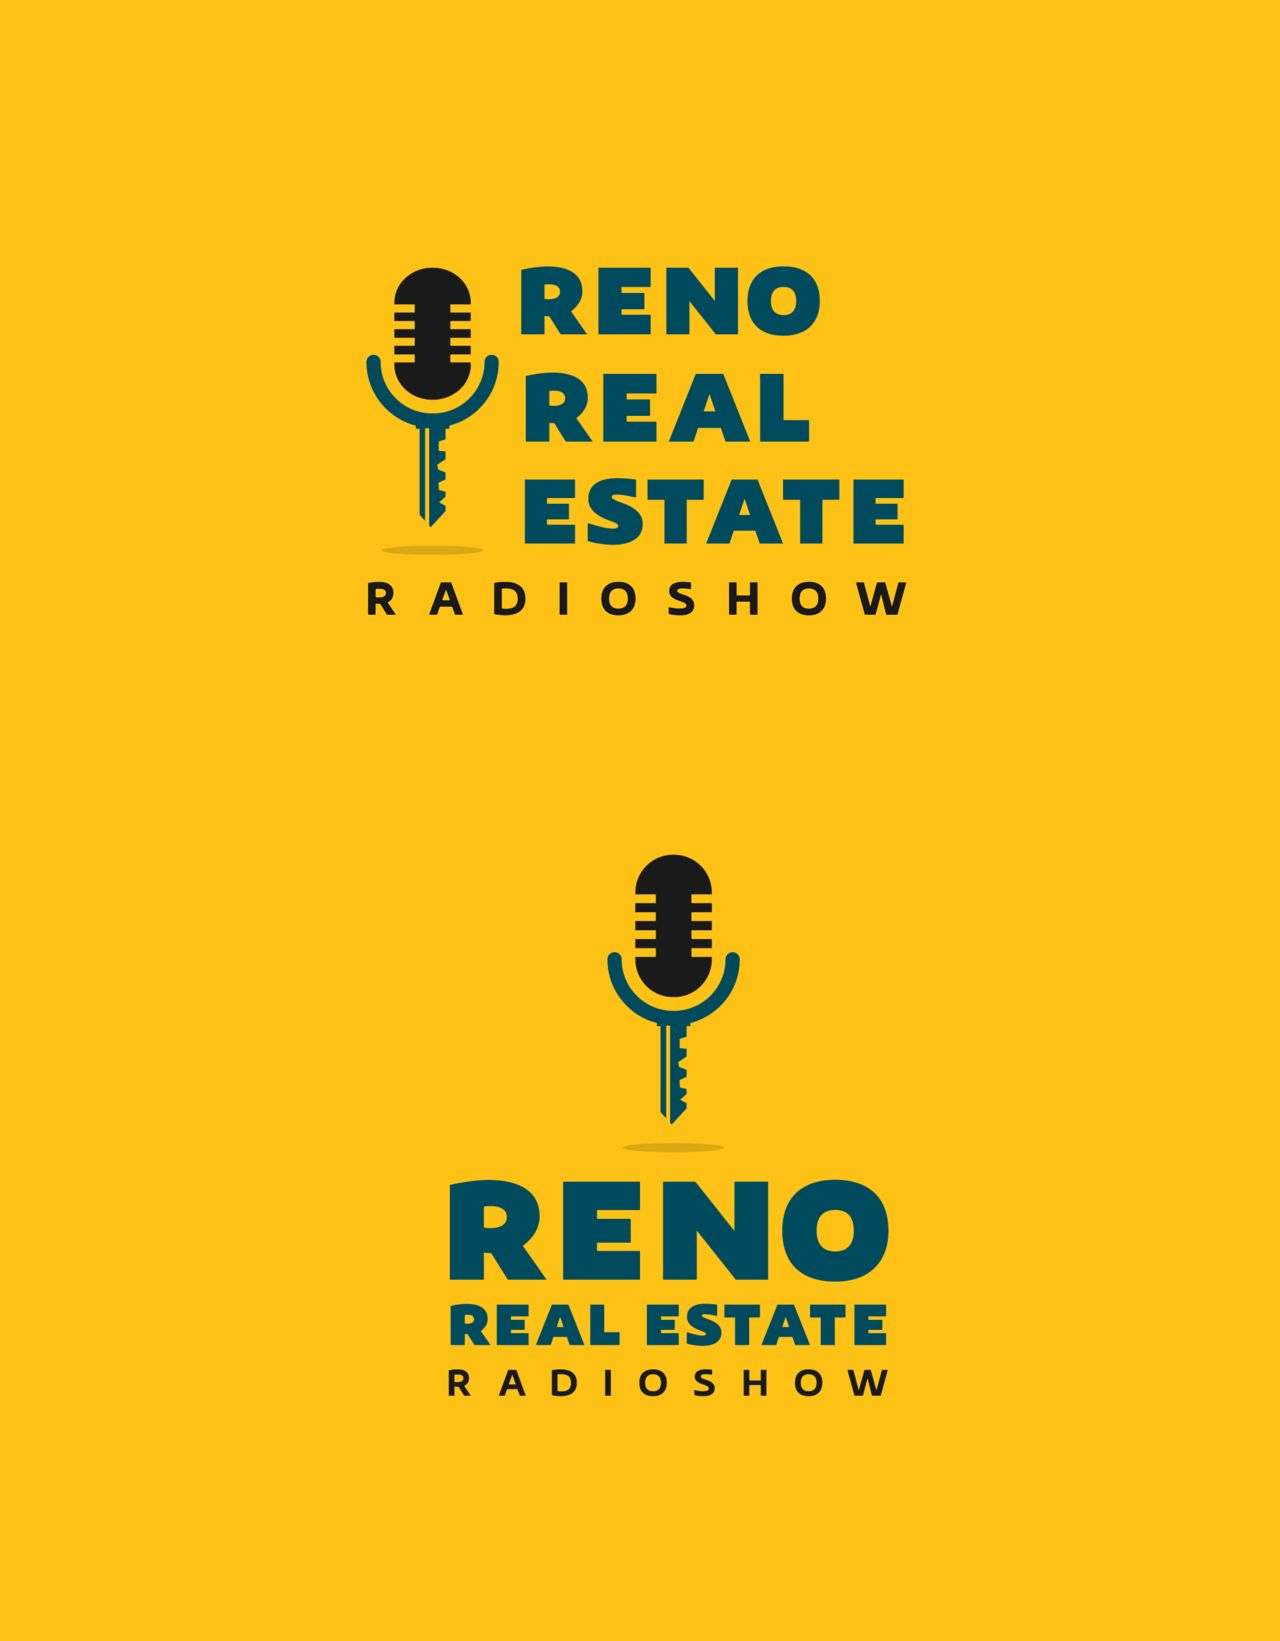 Reno Real Estate Radioshow